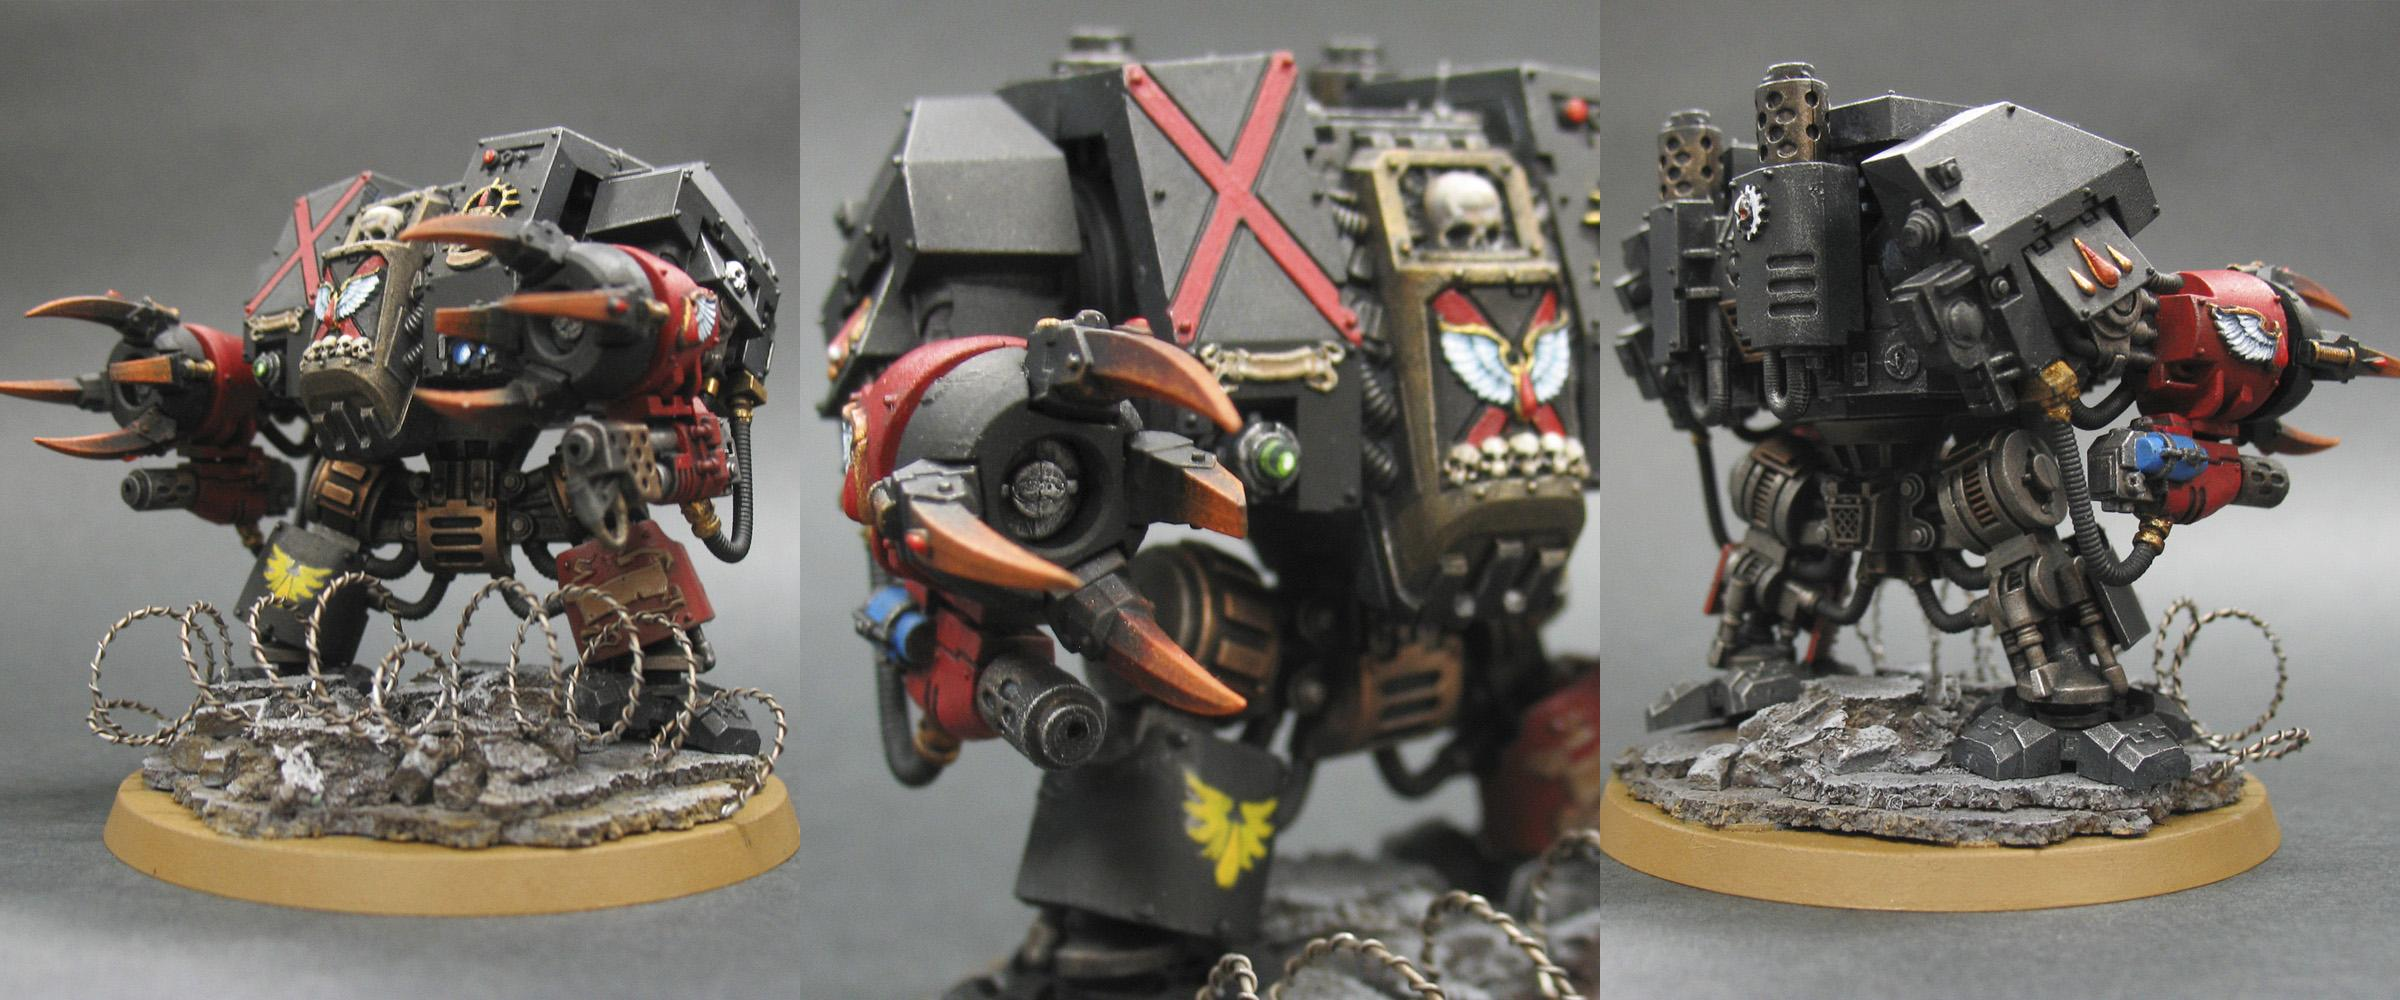 Blood Angels, Death Company, Dreadnought, Furioso, Space Marines, Venerable